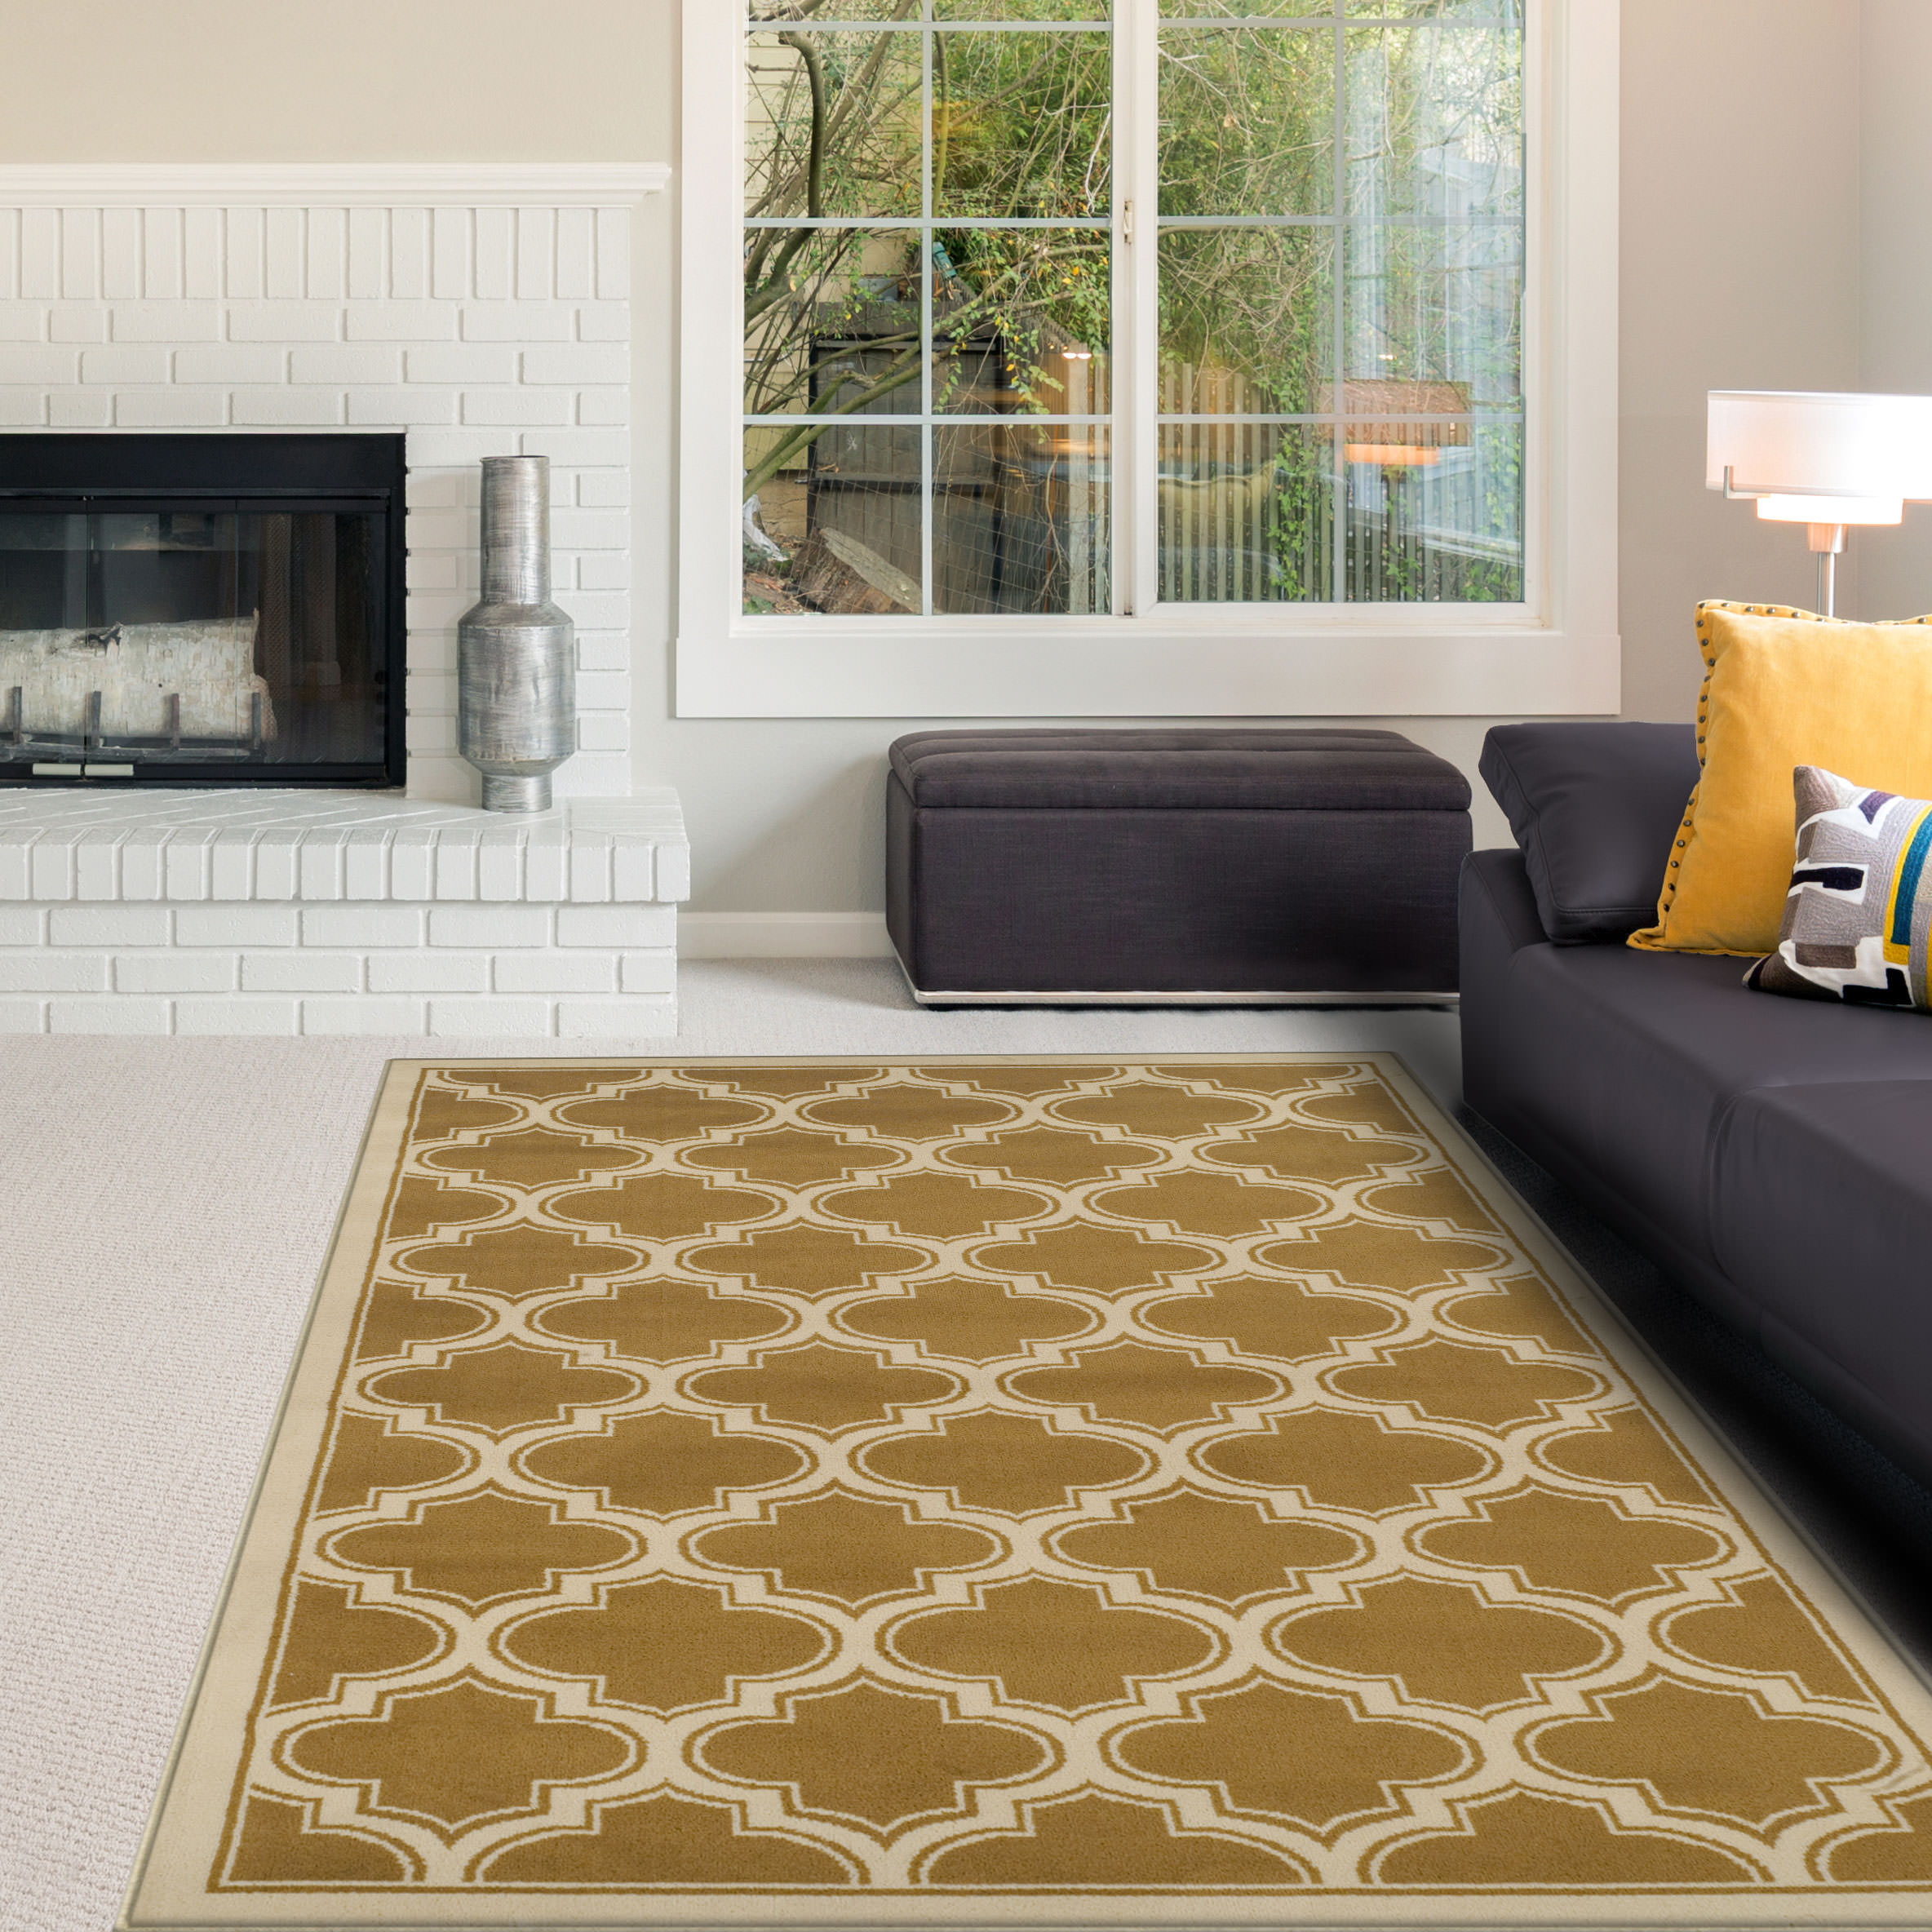 Superior 10mm Pile with Jute Backing, Trellis Pattern, Fashionable and Affordable Woven Bohemian Trellis Collection Area Rugs